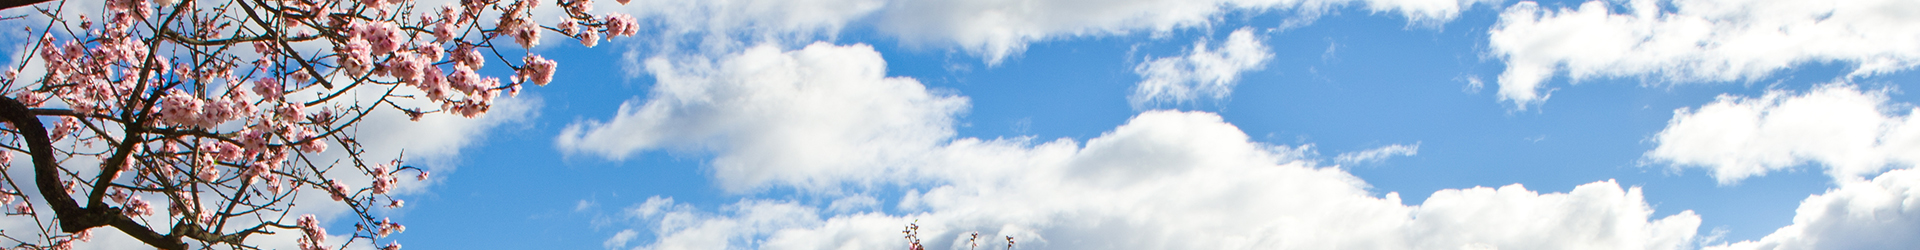 clouds and almond blossoms header